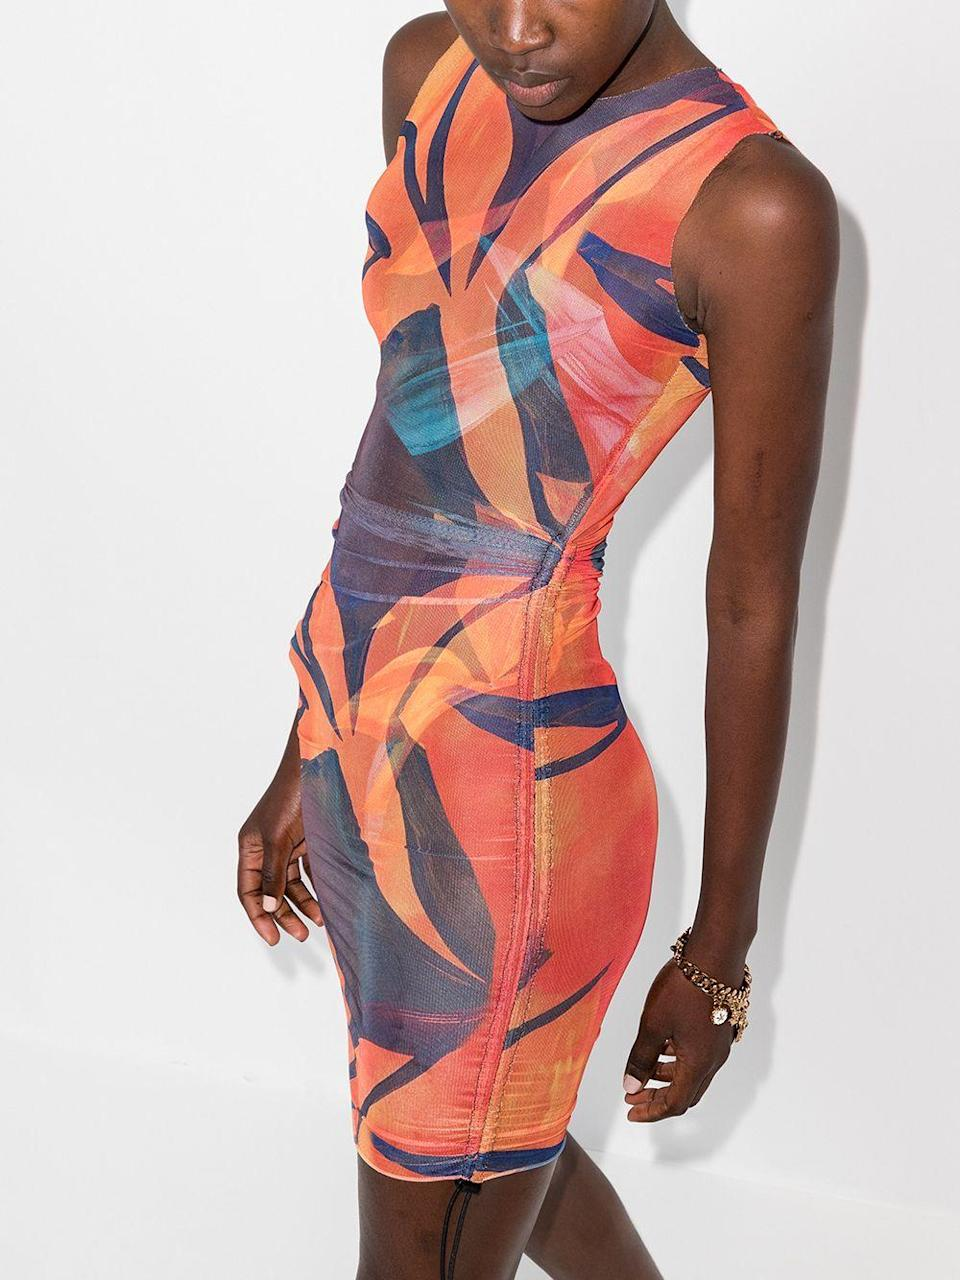 """<h2>Bodycon Mini</h2><br>""""After endless months of being stuck indoors shrouded in comfortable layers, the re-emergence from lockdown brings with it a certain boldness, and a willingness to test drive more daring pieces than we may have before. The mini bodycon dress will be a star of the summer.""""<br><br>- Celenie Seidel, Senior Womenswear Editor at Farfetch<strong><br> </strong> <br><br><strong>Louisa Ballou</strong> Heatwave Sheer Mini Dress, $, available at <a href=""""https://go.skimresources.com/?id=30283X879131&url=https%3A%2F%2Fwww.farfetch.com%2Fshopping%2Fwomen%2Flouisa-ballou-heatwave-sheer-mini-dress-item-16085215.aspx%3Fstoreid%3D13537"""" rel=""""nofollow noopener"""" target=""""_blank"""" data-ylk=""""slk:Farfetch"""" class=""""link rapid-noclick-resp"""">Farfetch</a>"""